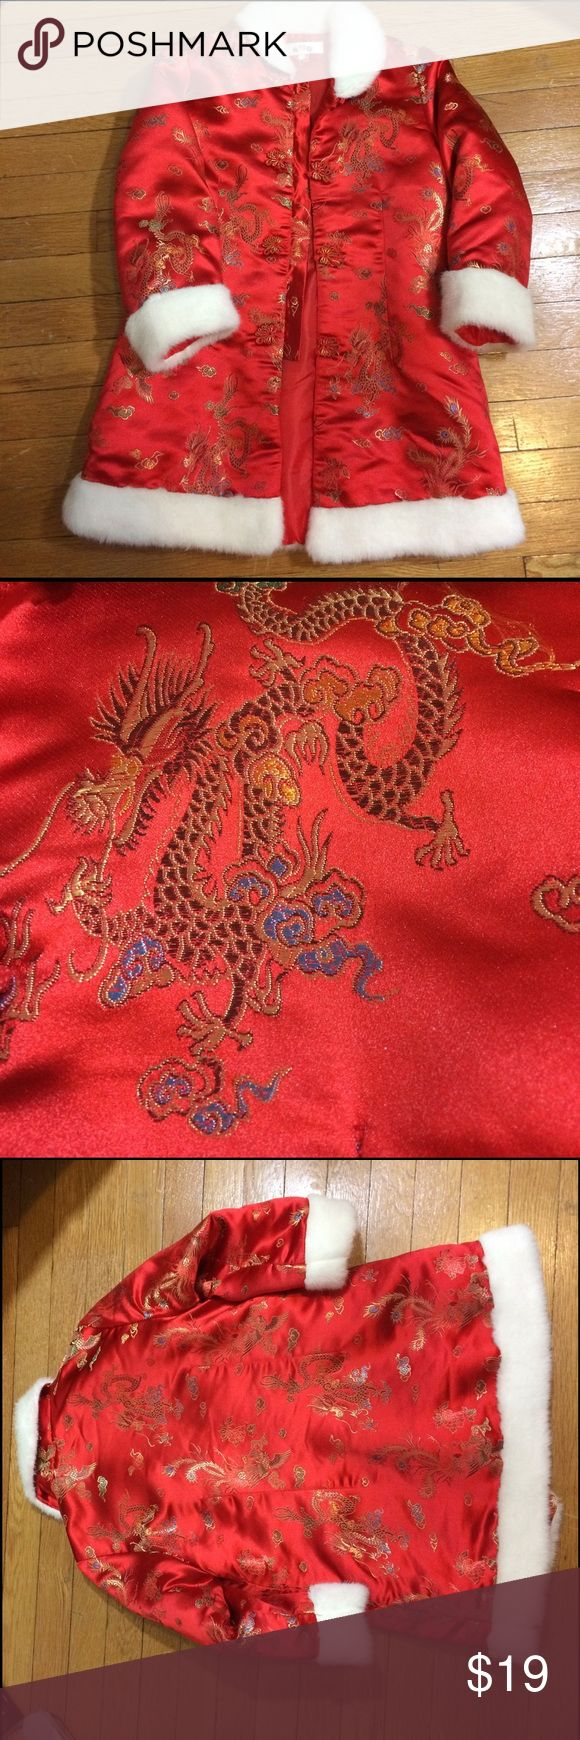 "Girls Red Fur Trim Asian Chinese Dragon Coat 6 7 Girls Red Fur Trim Asian Chinese Dragon Coat 6 7. There is no Size tag.  Measurements are:  Shoulders 14"", Pit to pit 18 3/4"", length 26"" and sleeve 16.5"". Jackets & Coats"